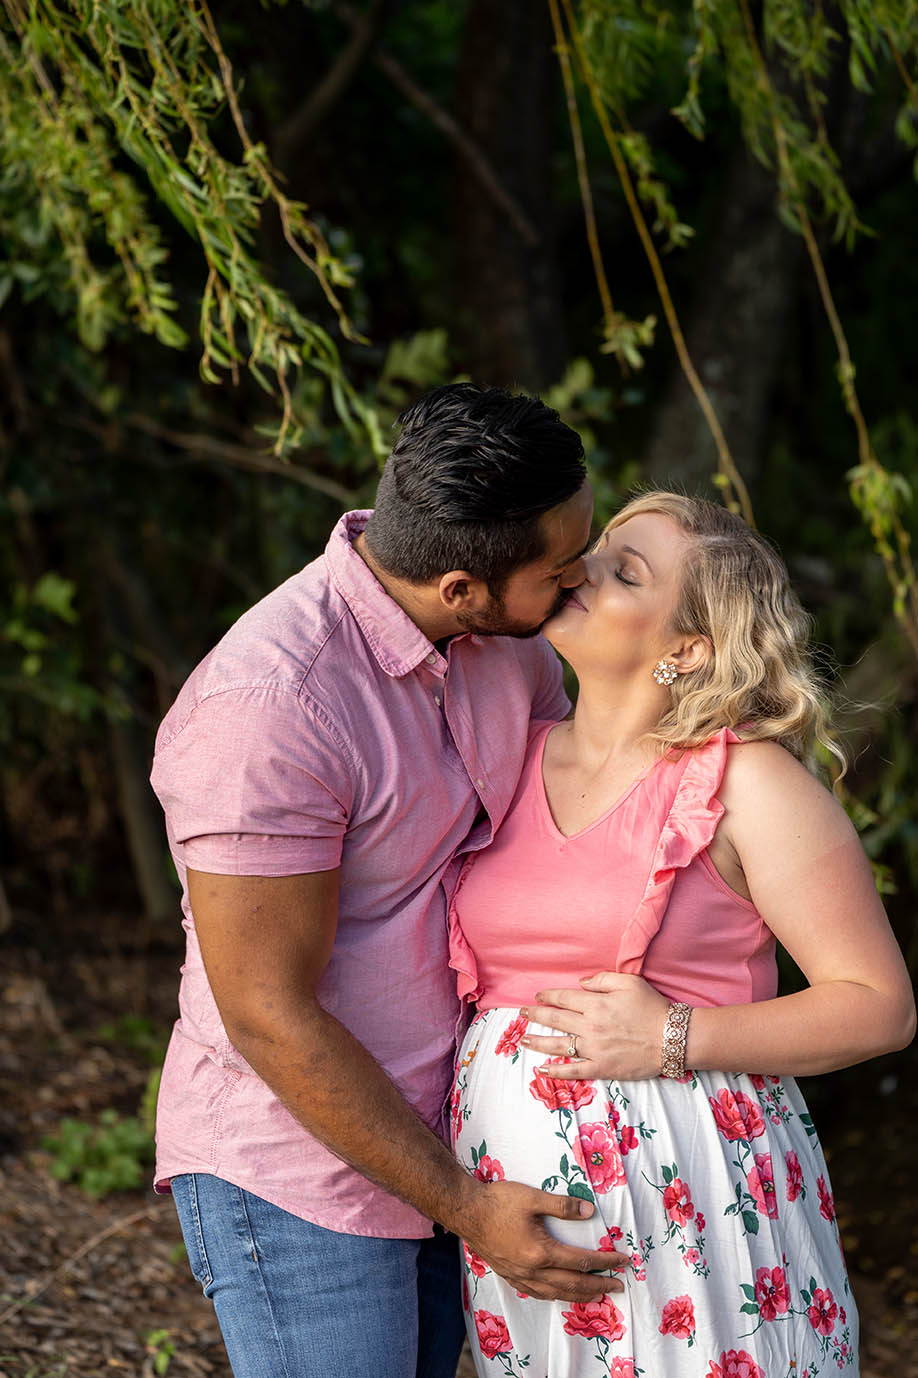 Maternity Photography - Husband and wife